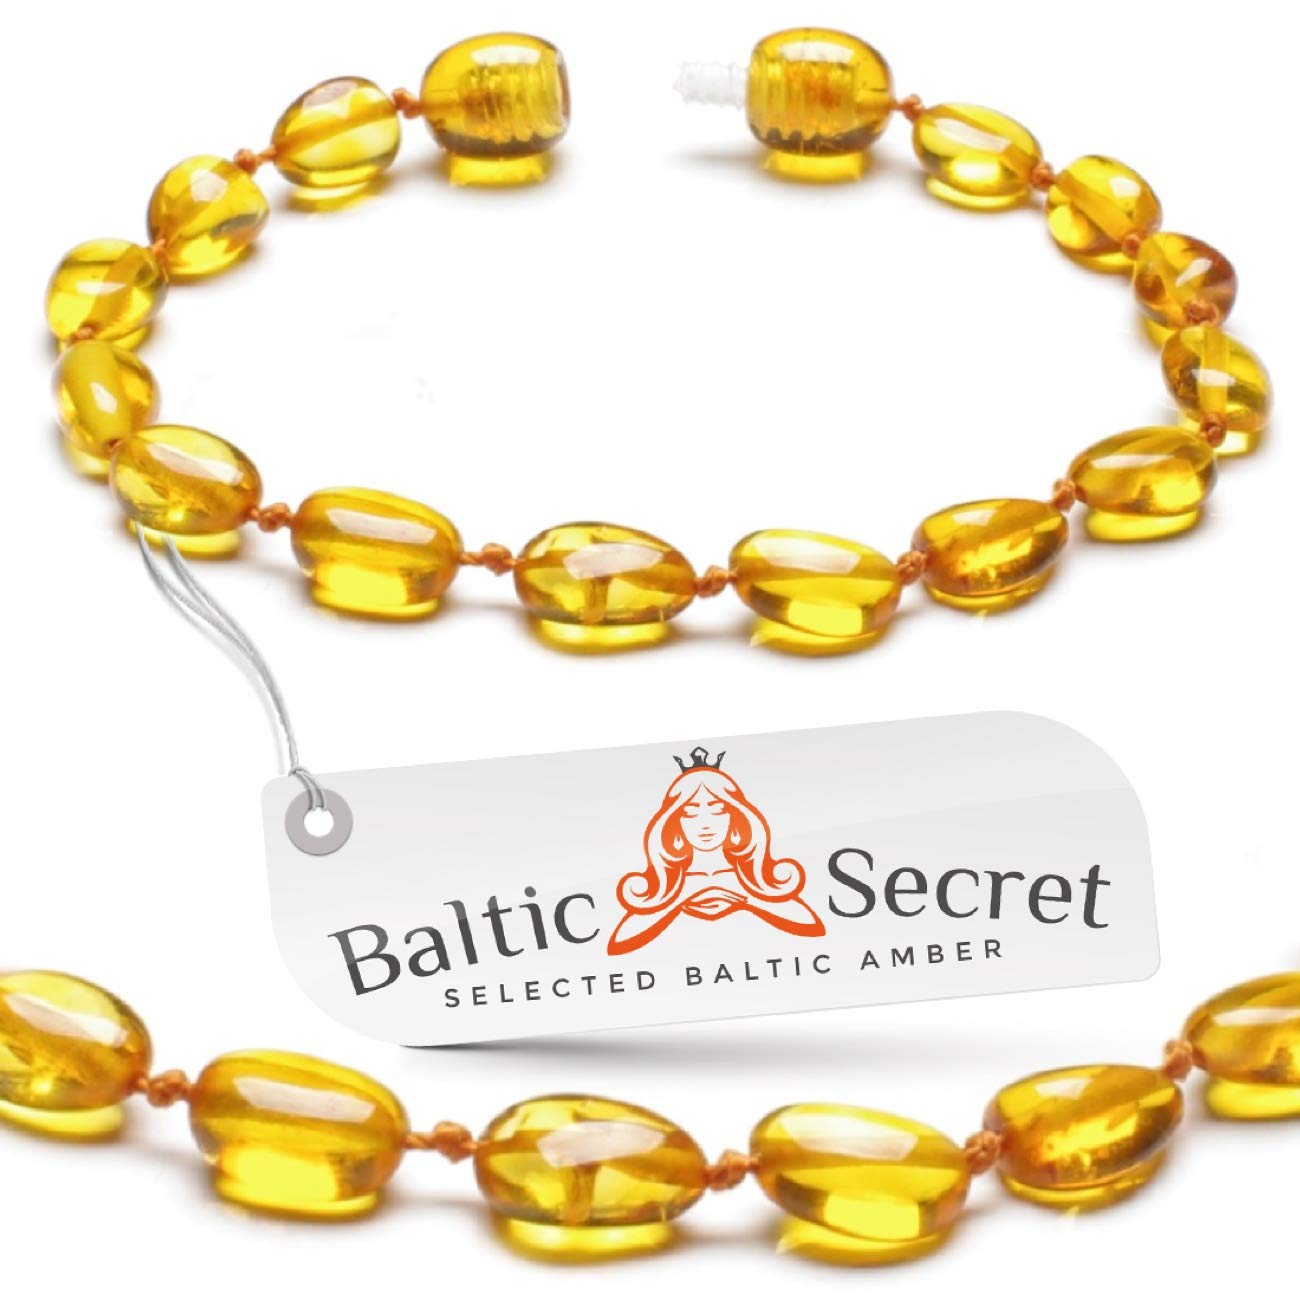 Premium Amber Teething Bracelet Anklet/Extra Safe / 50% Richer and Higher in Value/Sizes from 4.5 in to 8 in/Reduces Teething Symptoms Naturally/HNY.U-BN / 17.5CM / 6.9IN by Baltic Secret